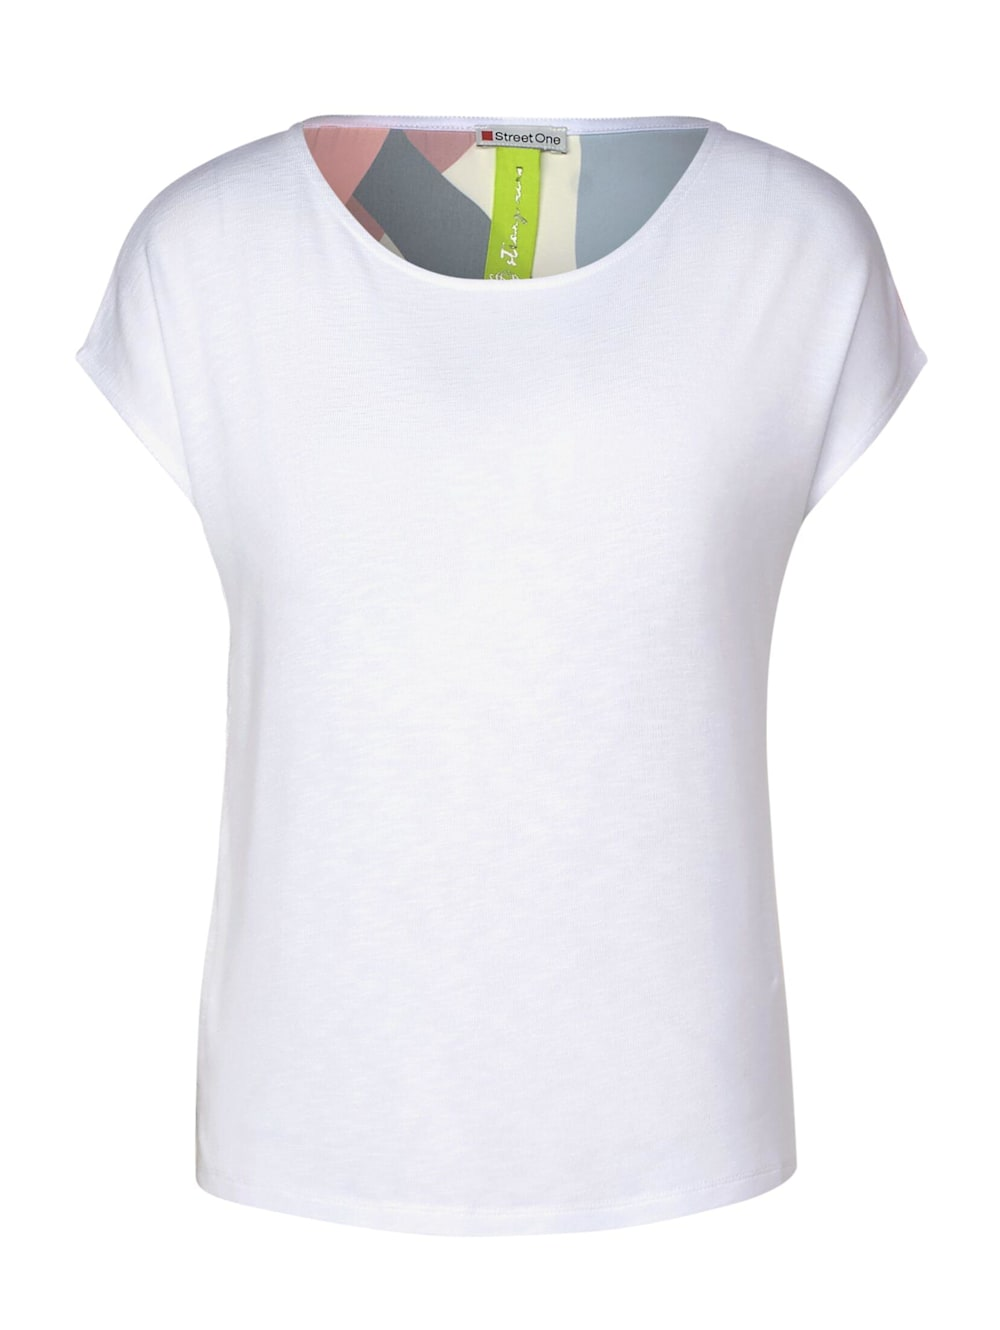 Shirt mit Muster in White Street One